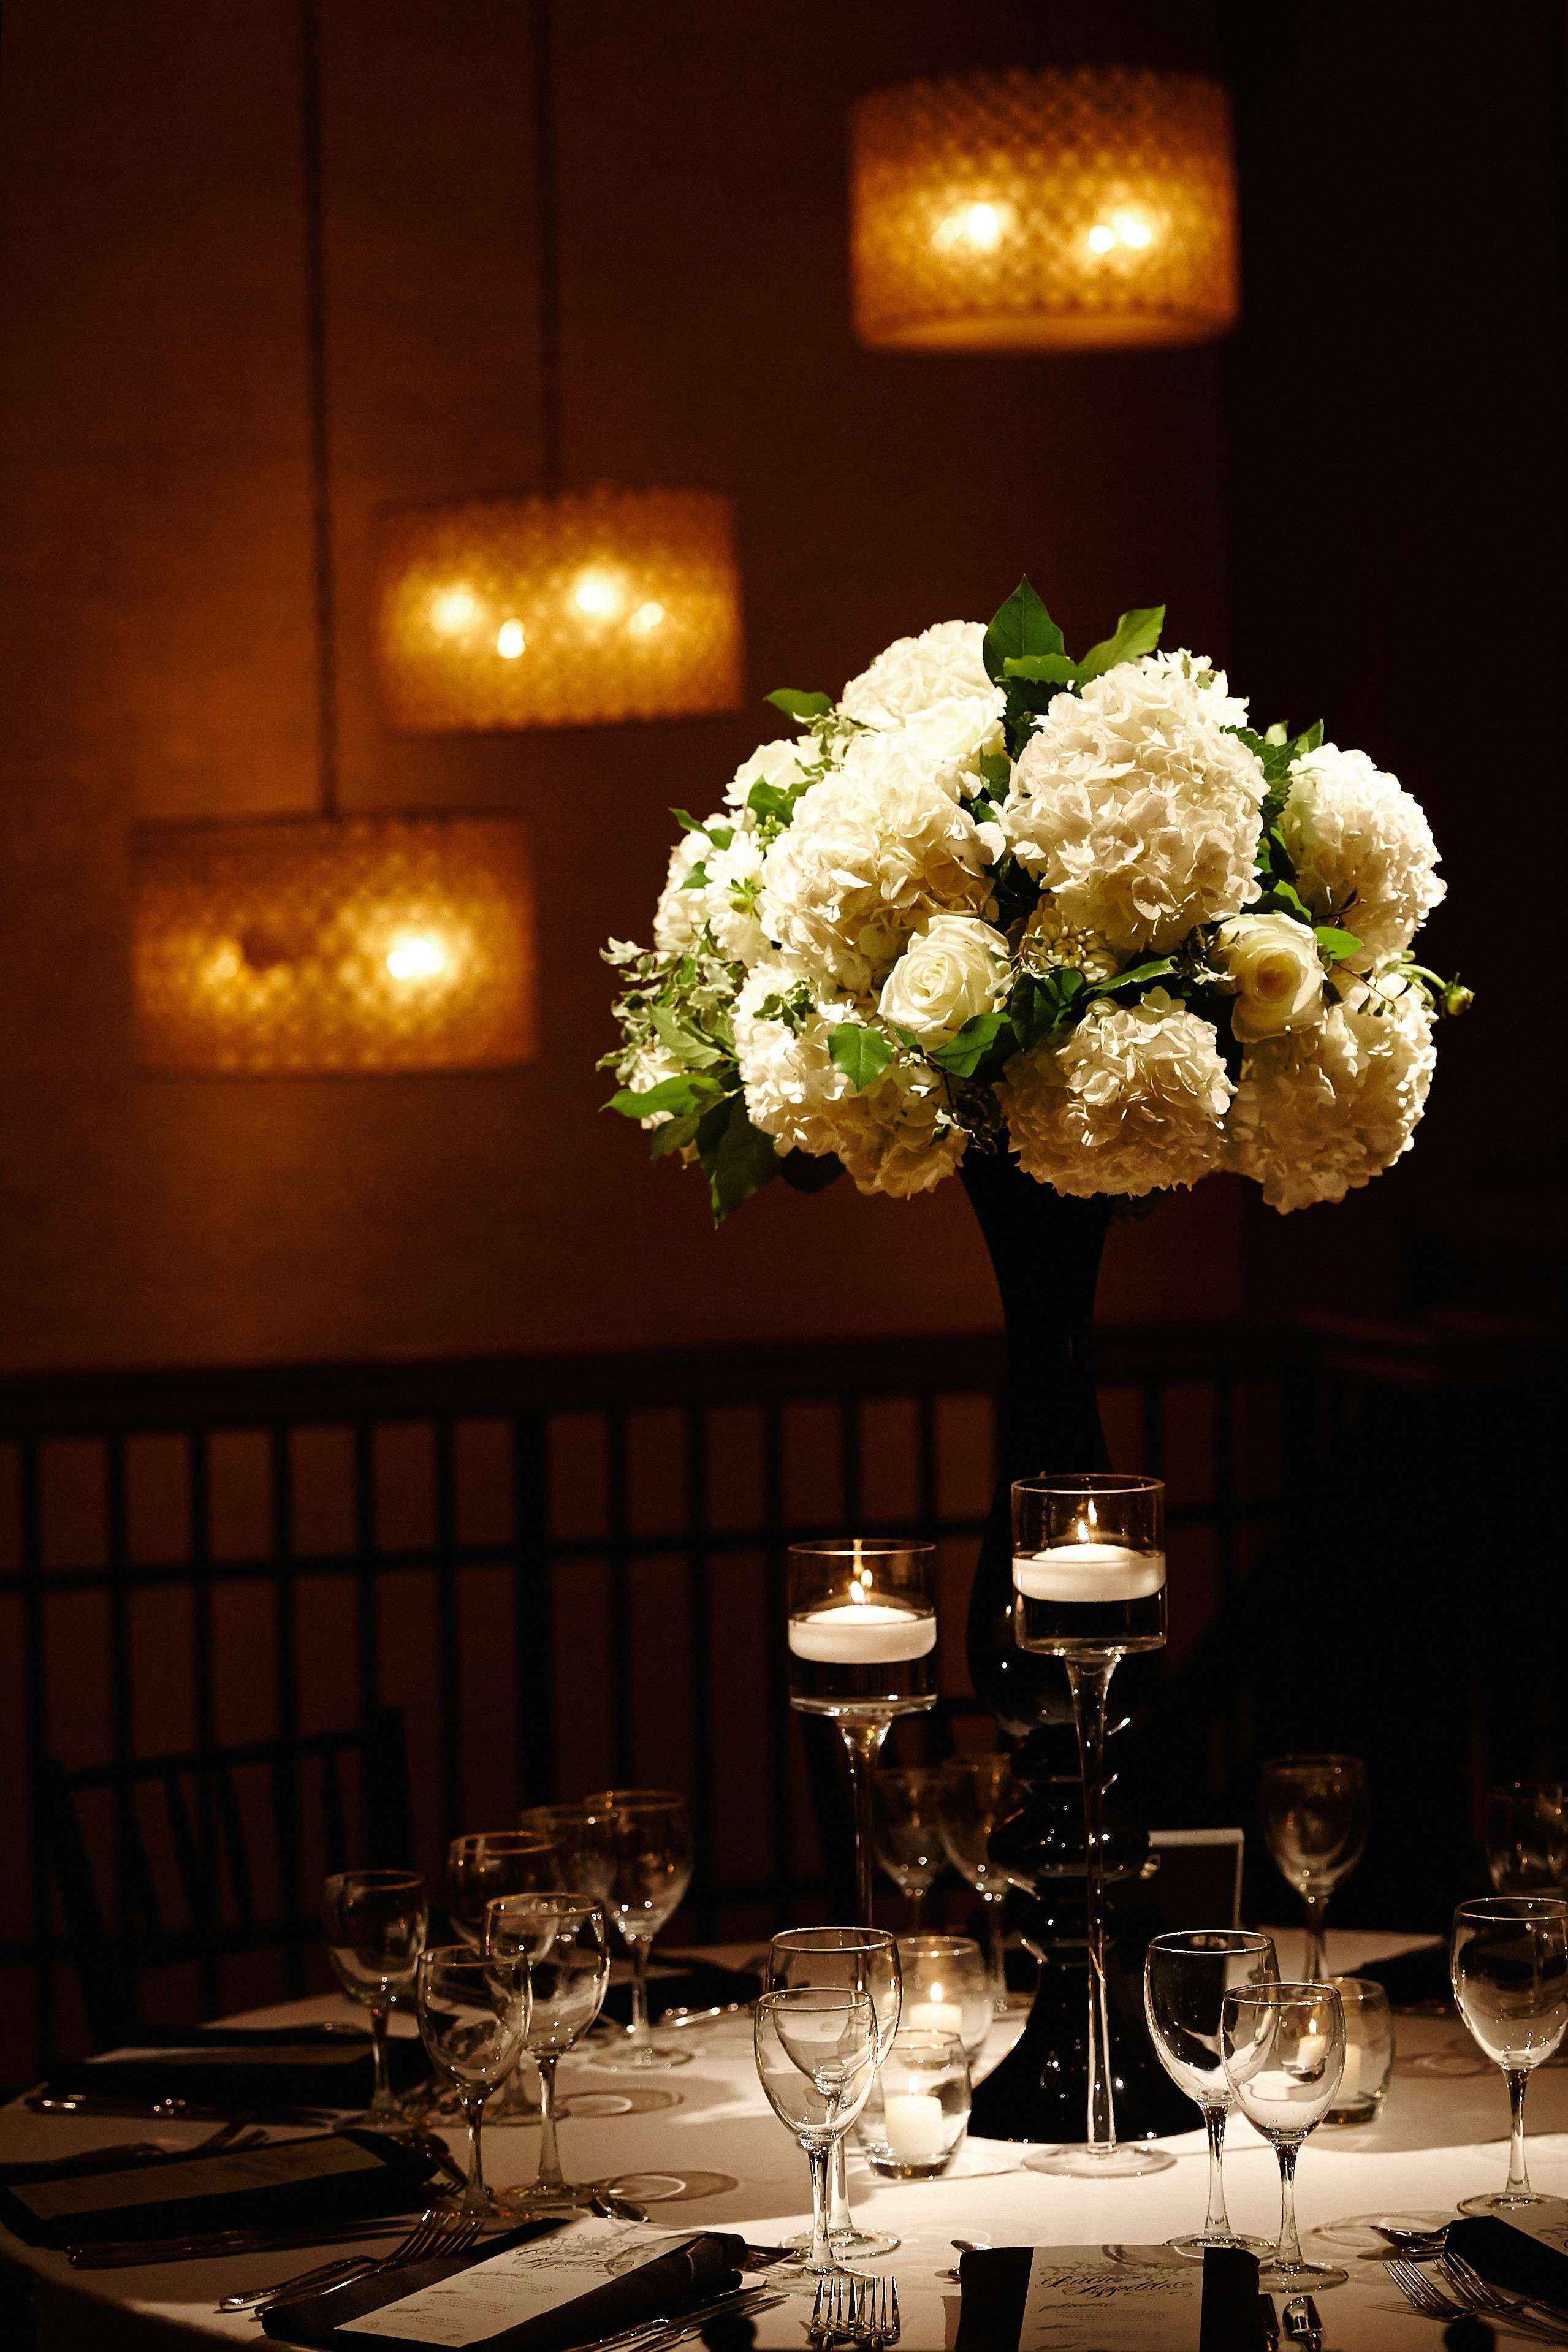 rose gold wedding vases of gold sequin tablecloth wholesale beautiful il fullxfull h vases pertaining to gold sequin tablecloth wholesale beautiful il fullxfull h vases black vase white flowers zoomi 0d with